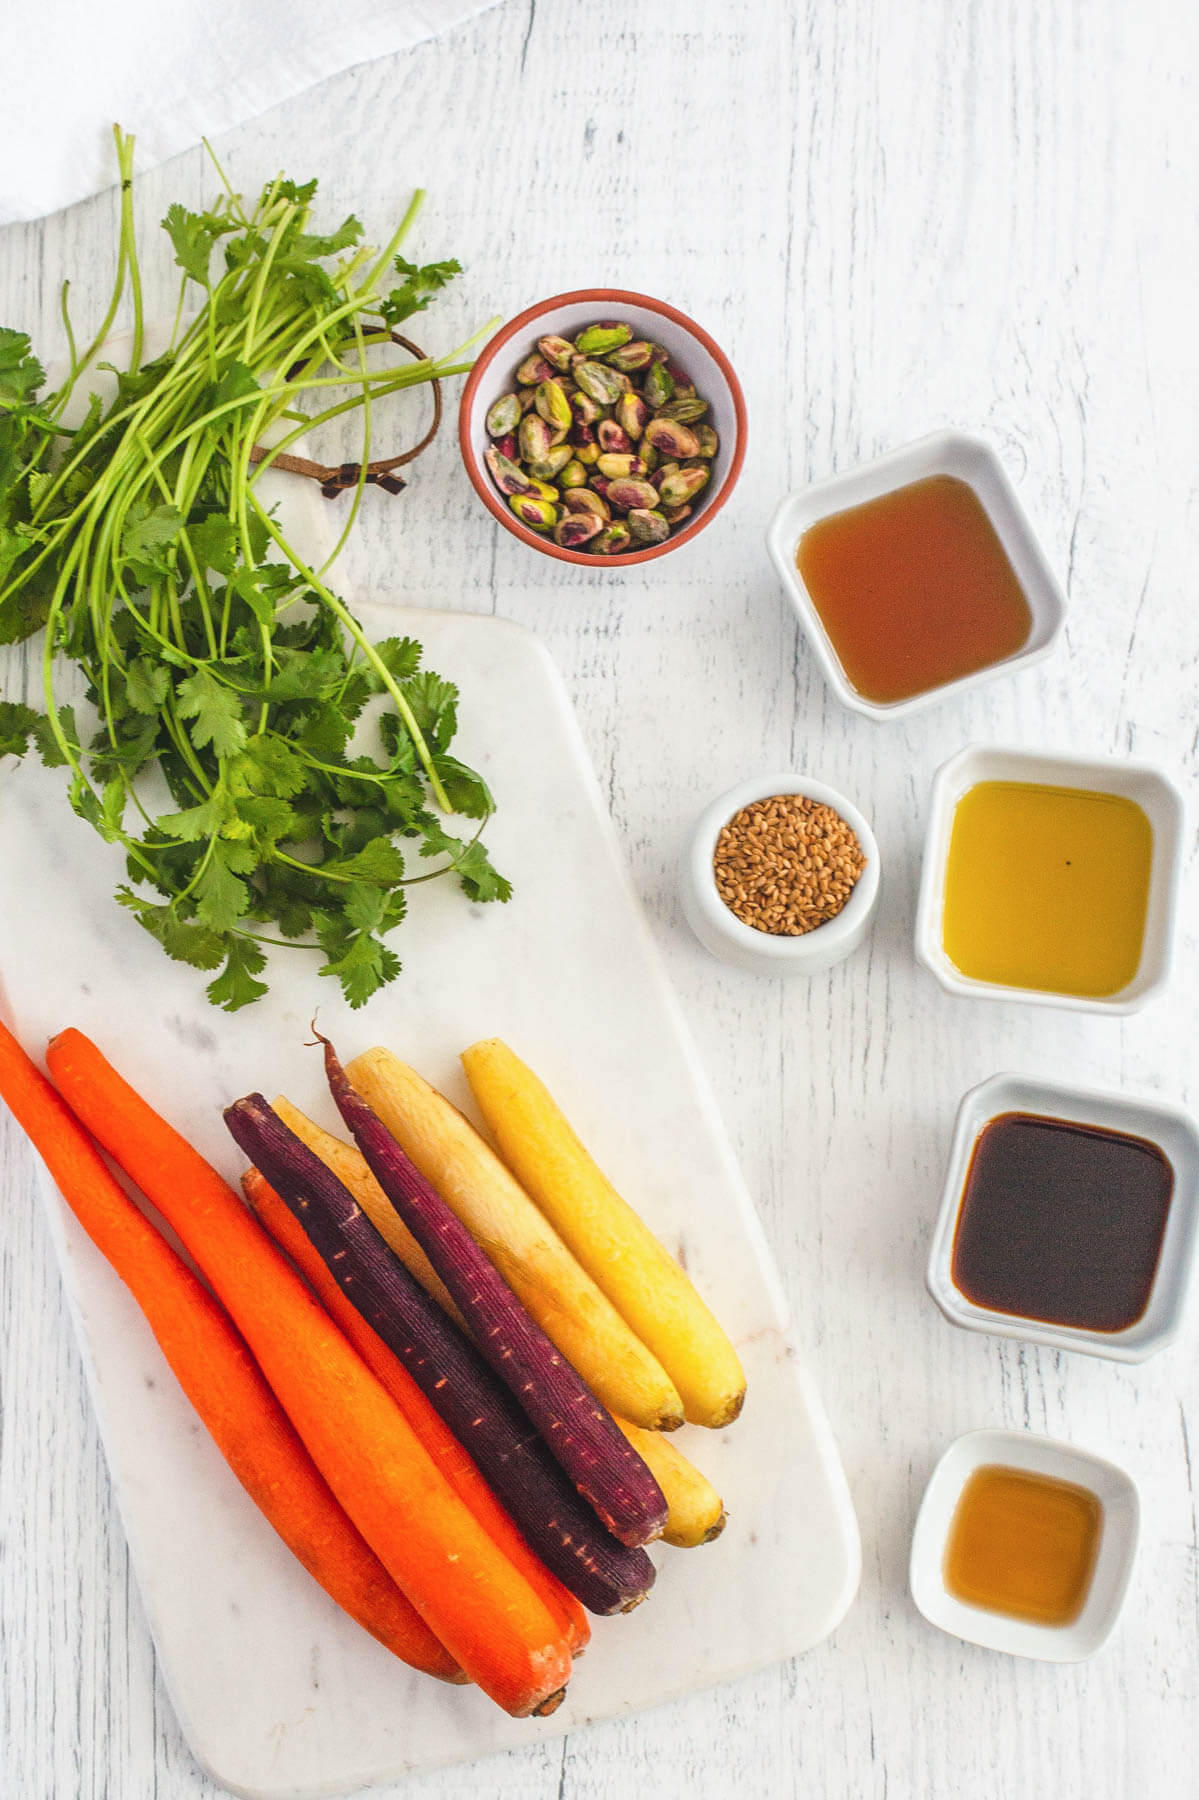 Ingredients for a colourful carrot salad.